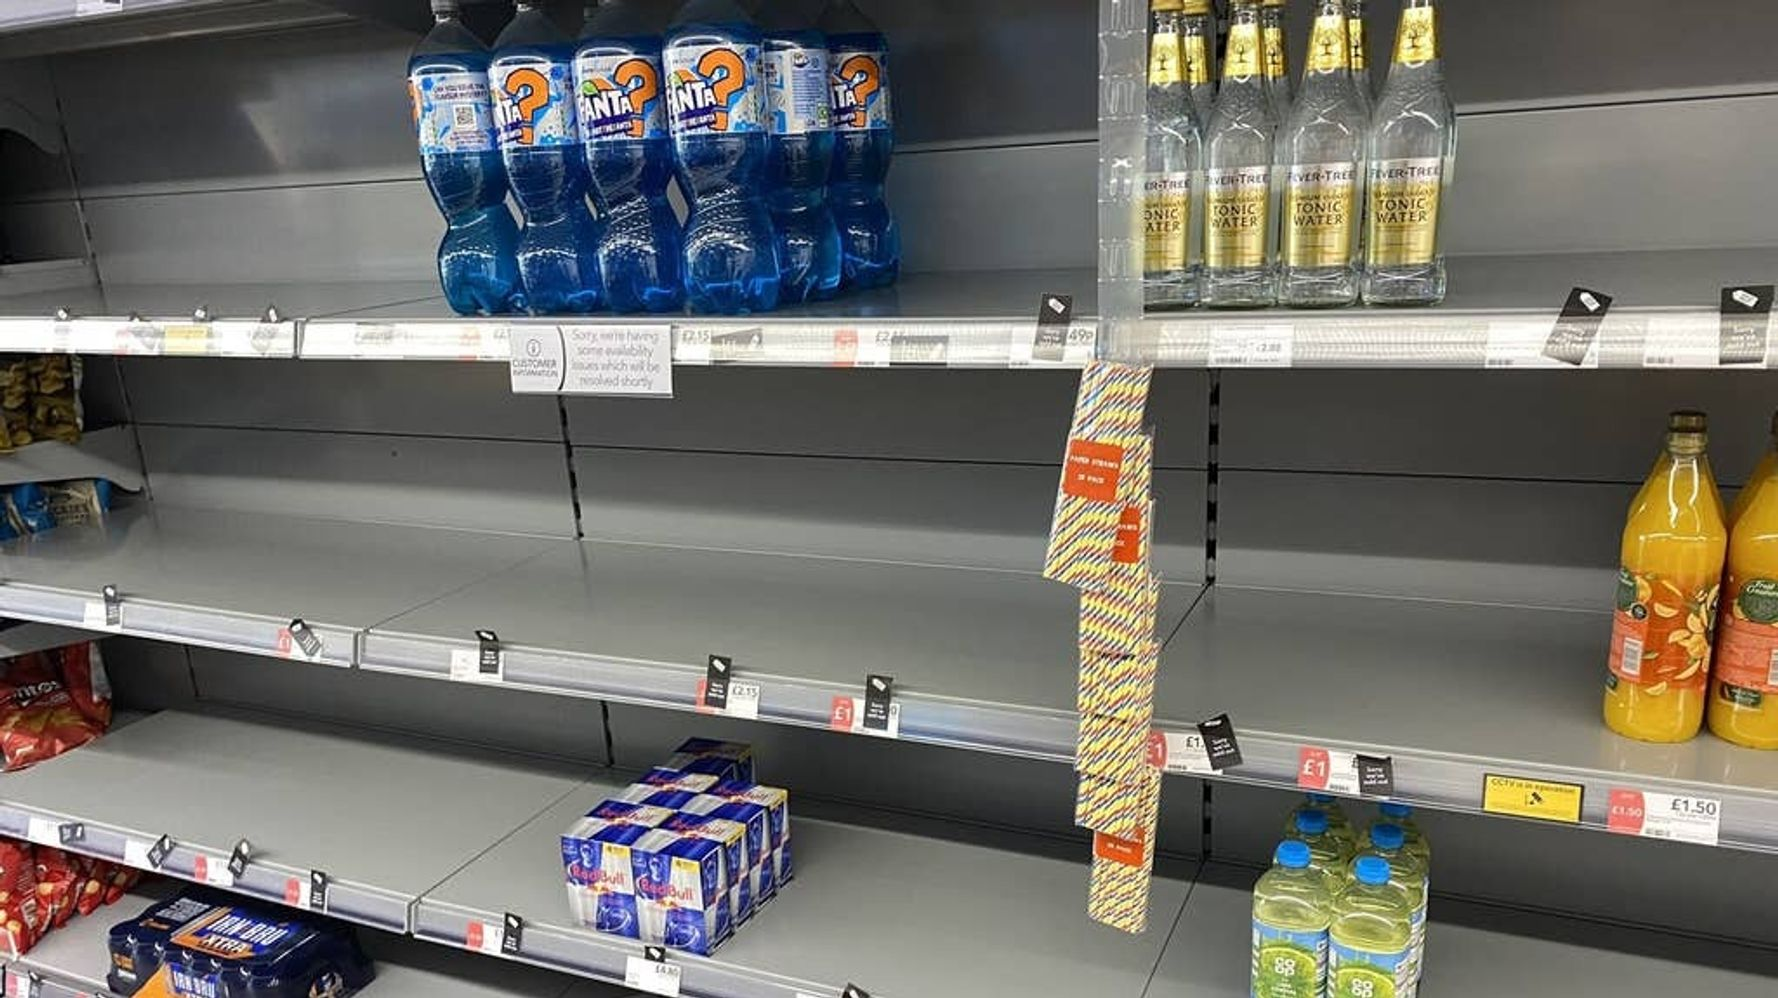 No, You Don't Need To Panic Buy (Again), Despite These Pictures